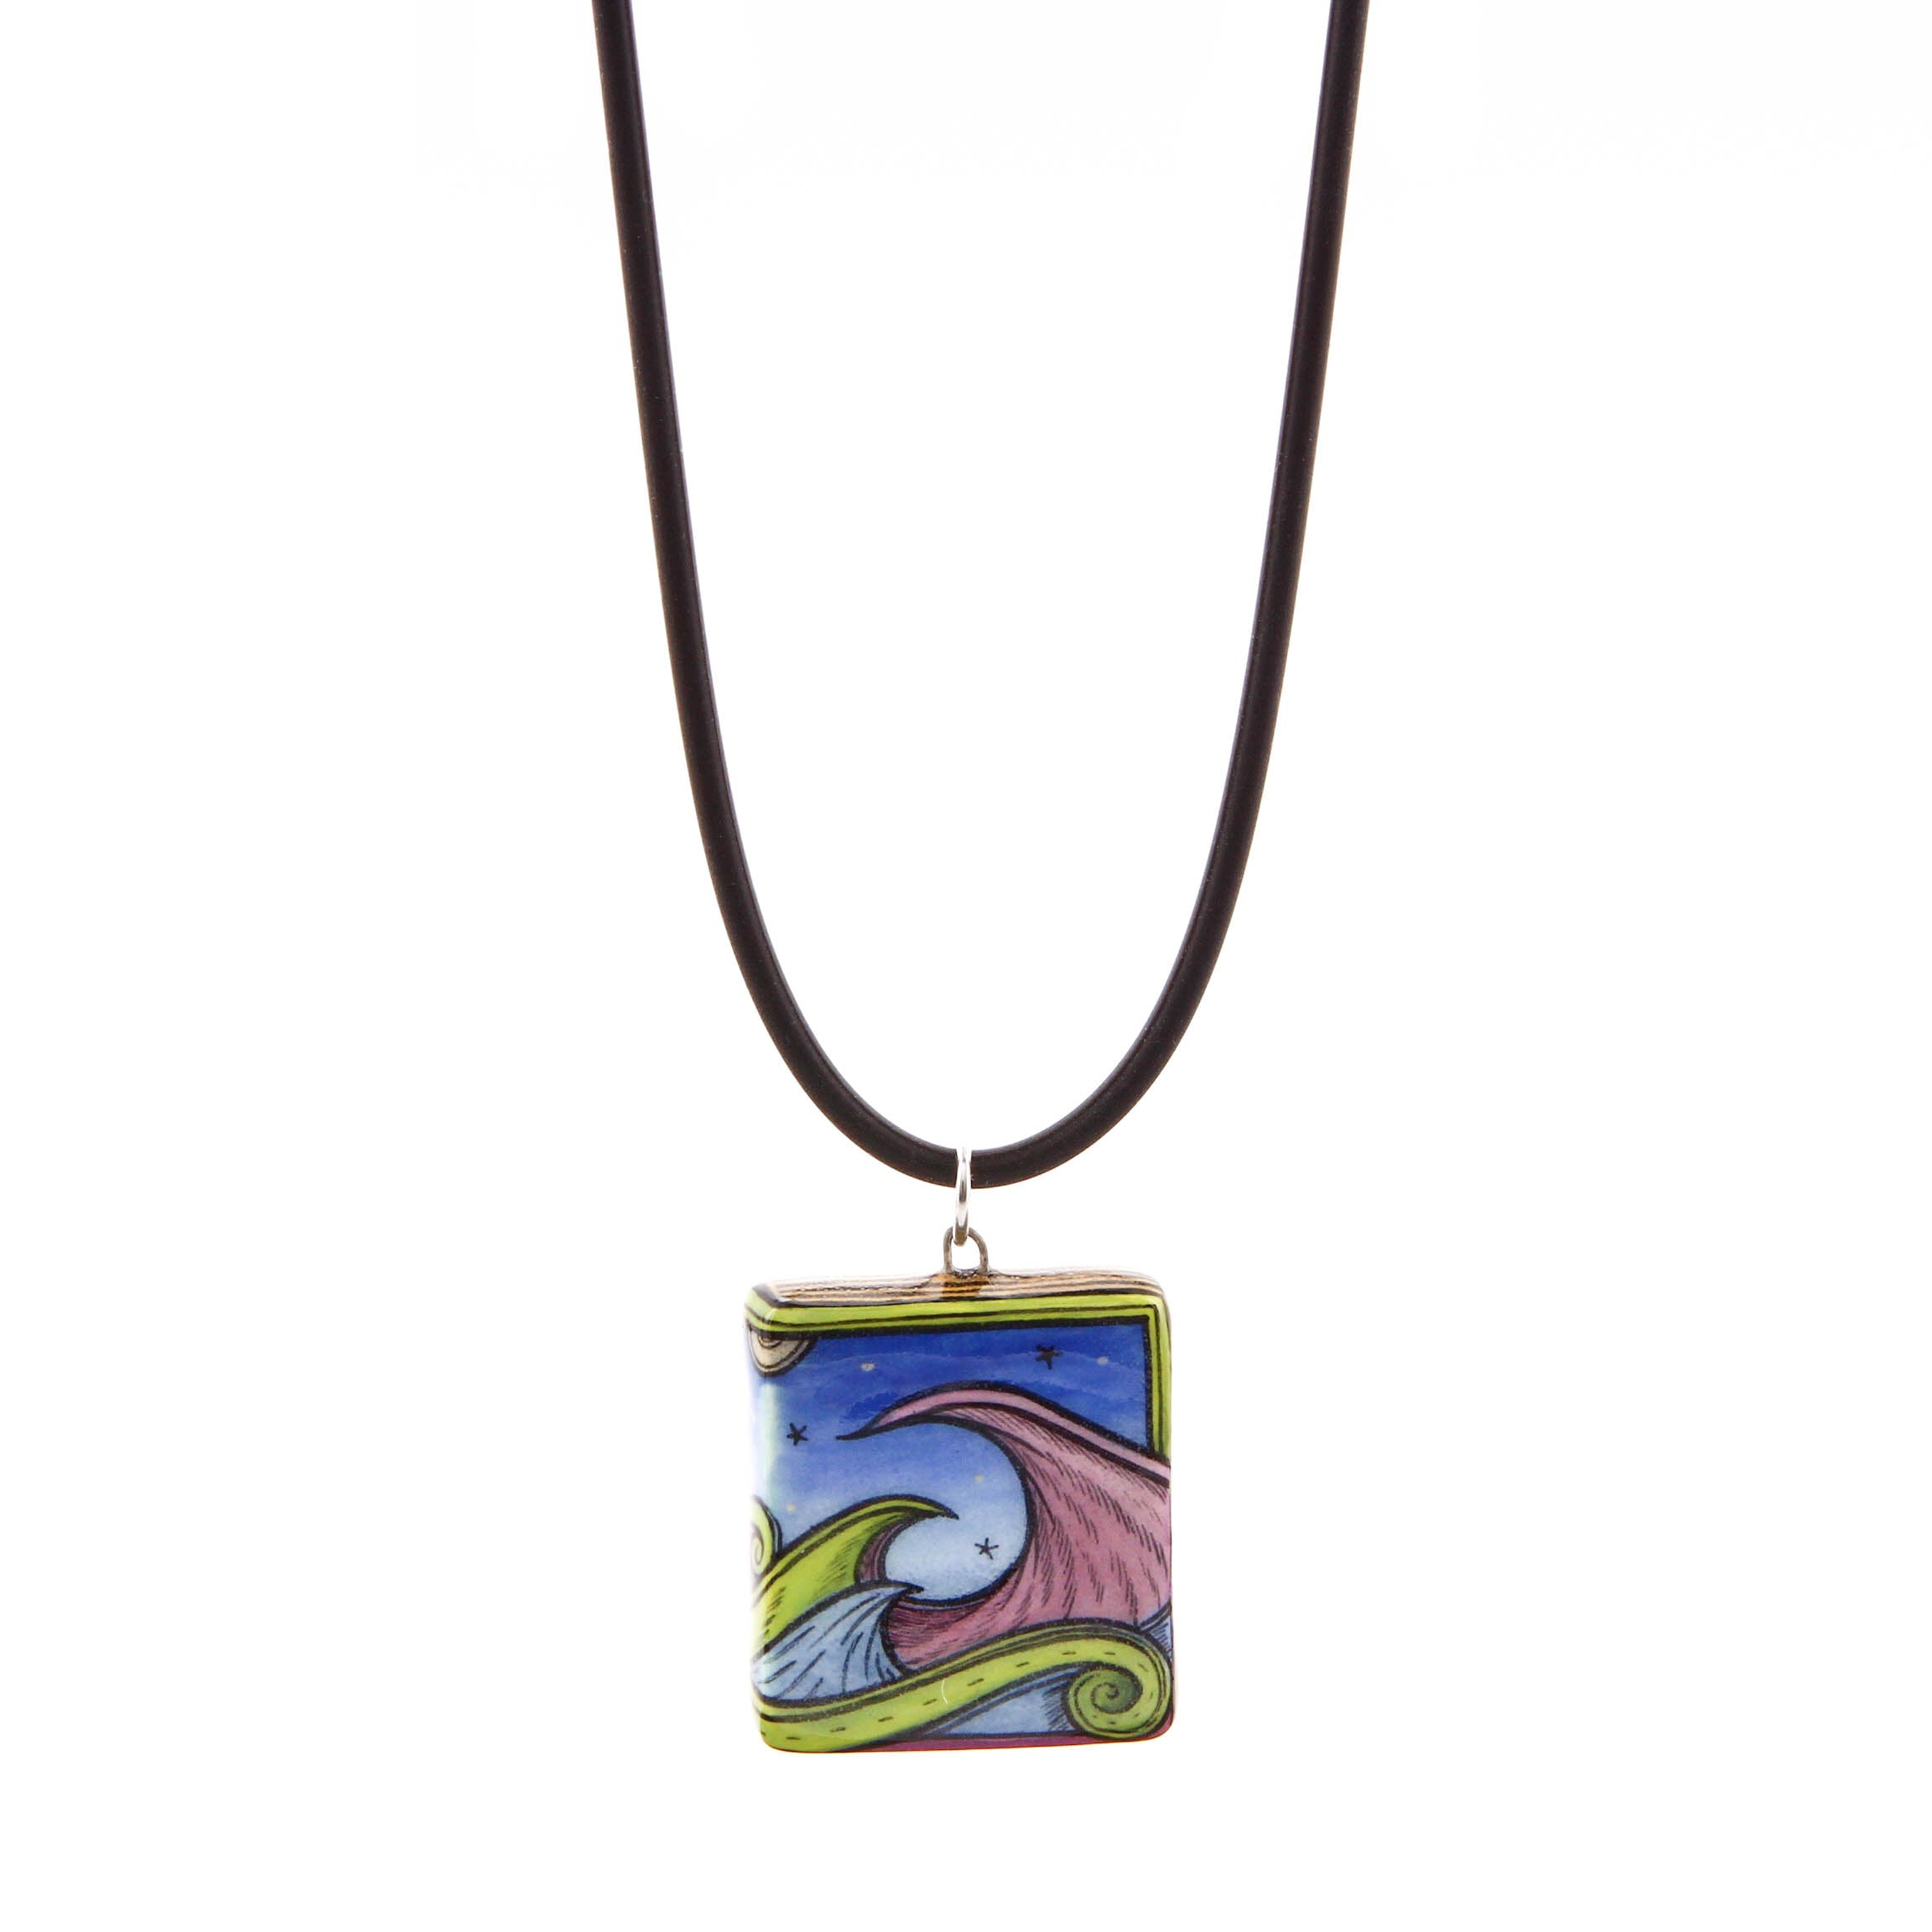 Terri Kern, Ceramic Necklace with Waves with Silicon Band